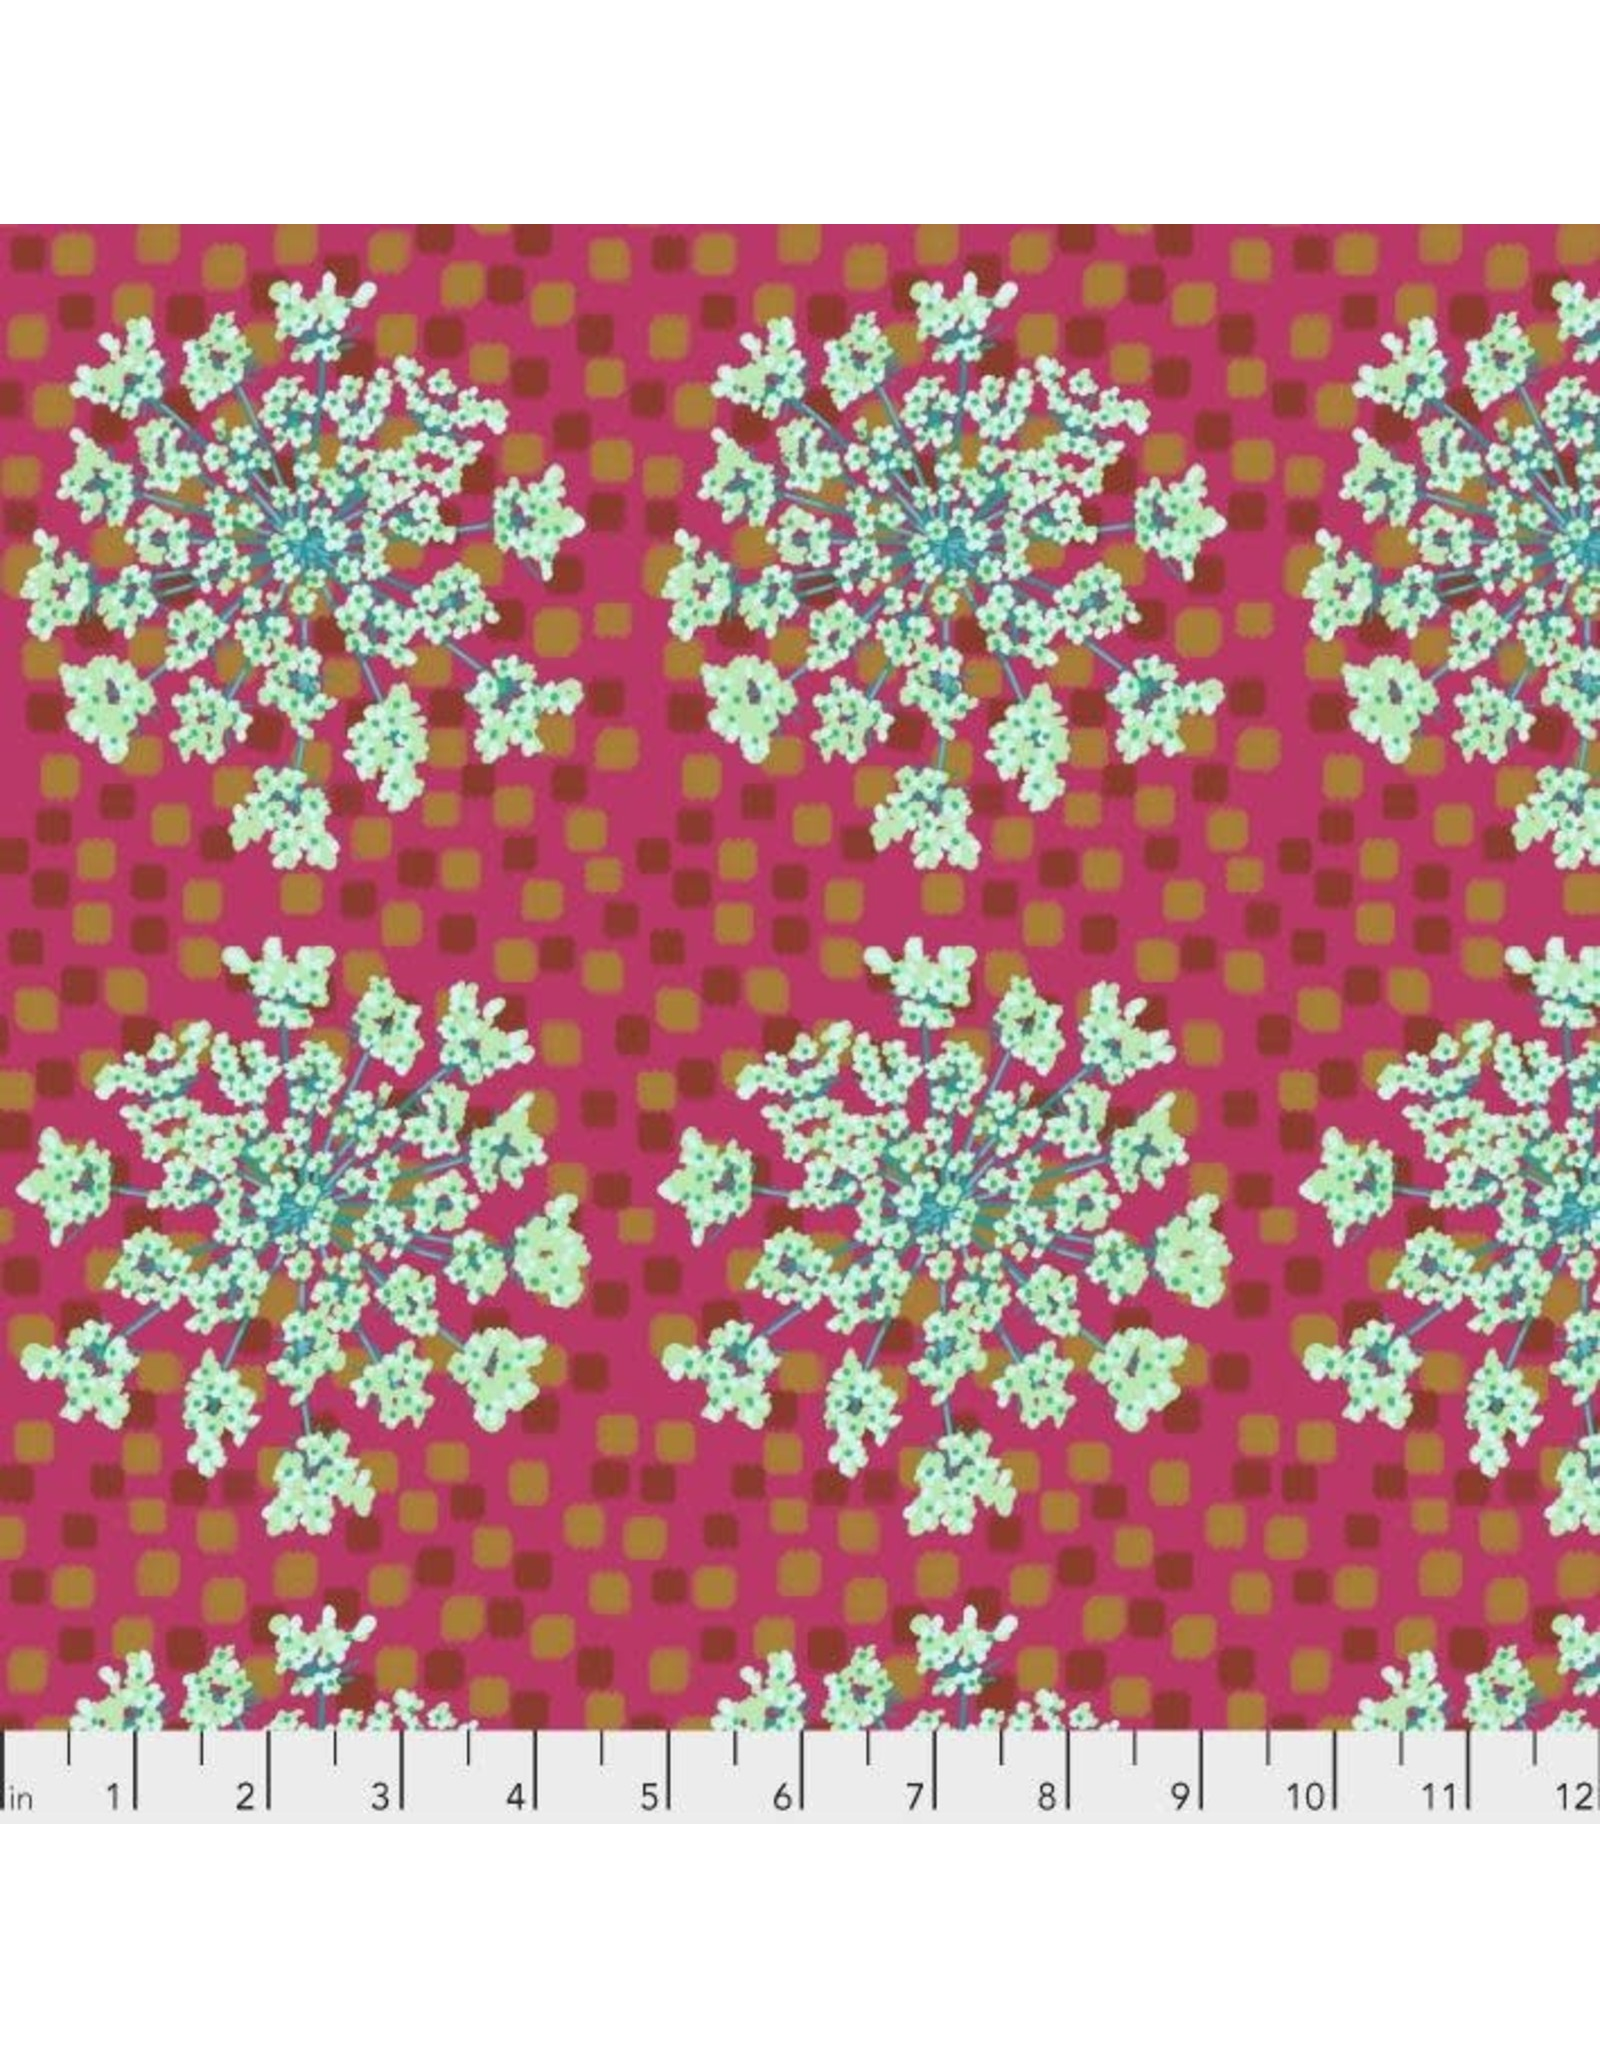 Anna Maria Horner One Mile Radiant, Queen Anne in Apple, Fabric Half-Yards PWAM015